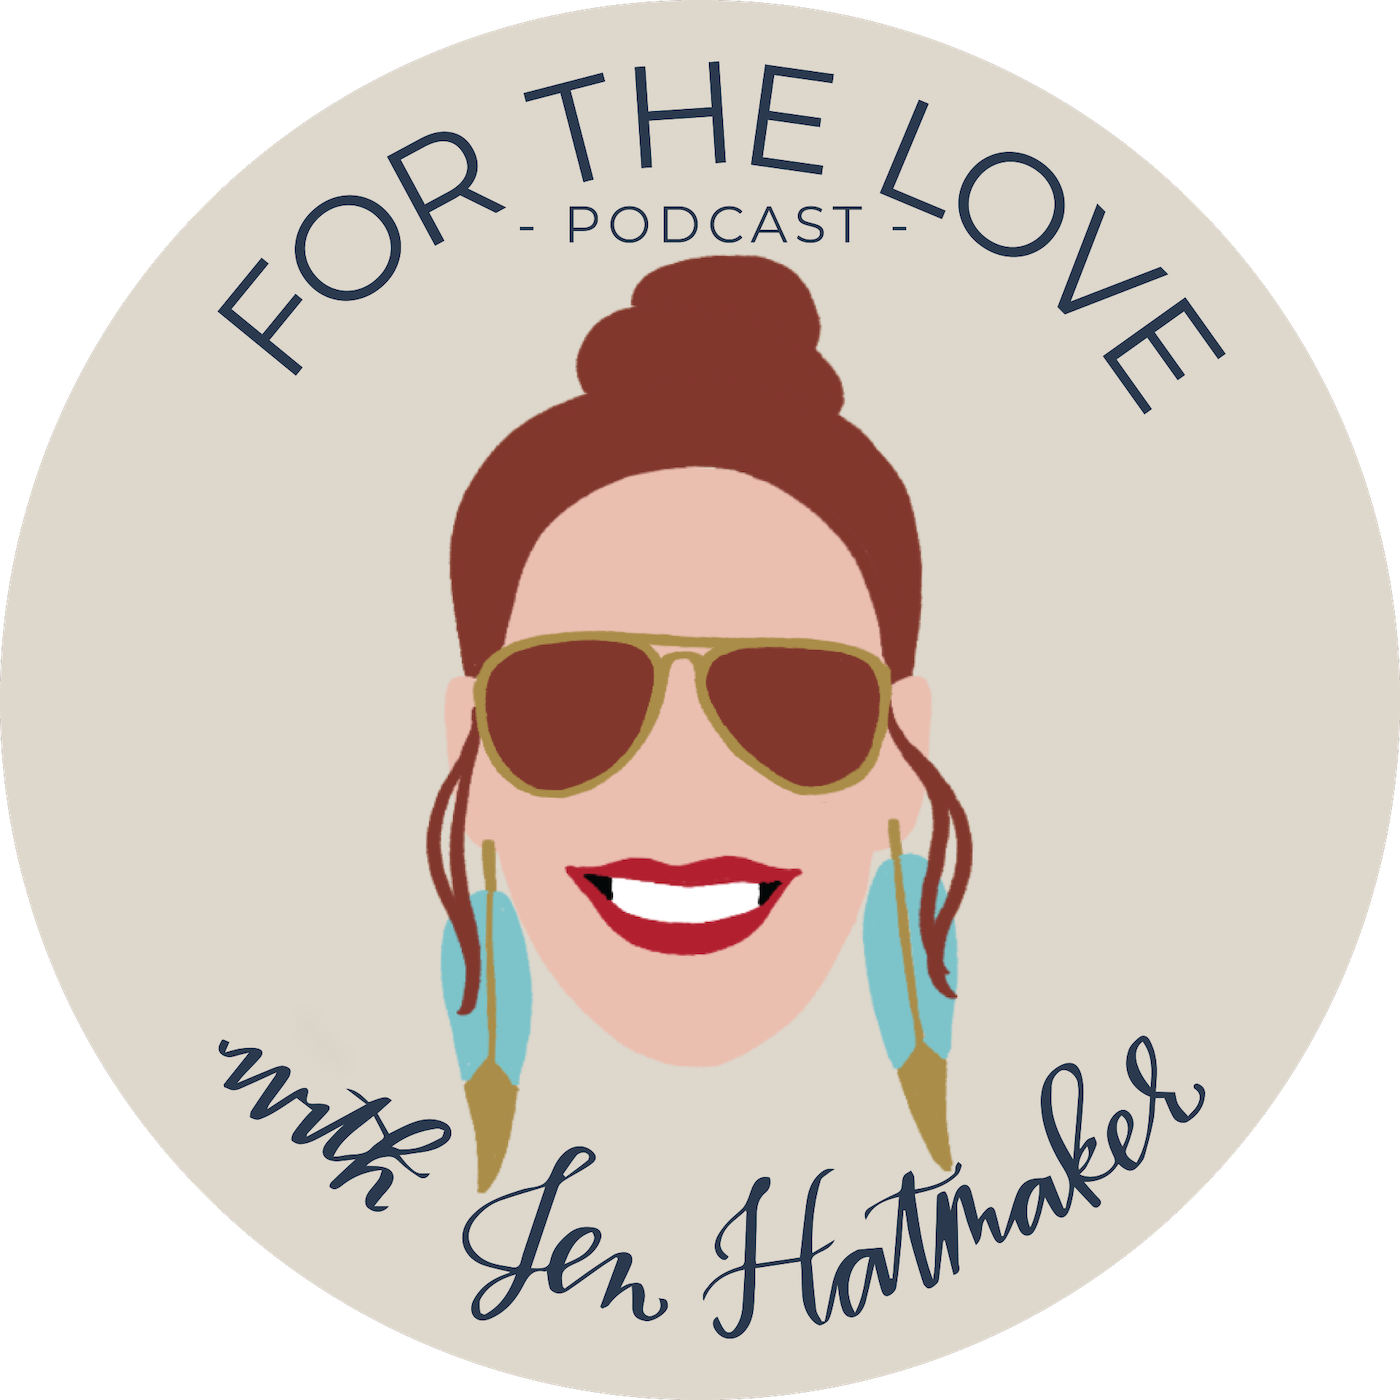 For The Love With Jen Hatmaker Podcast show art